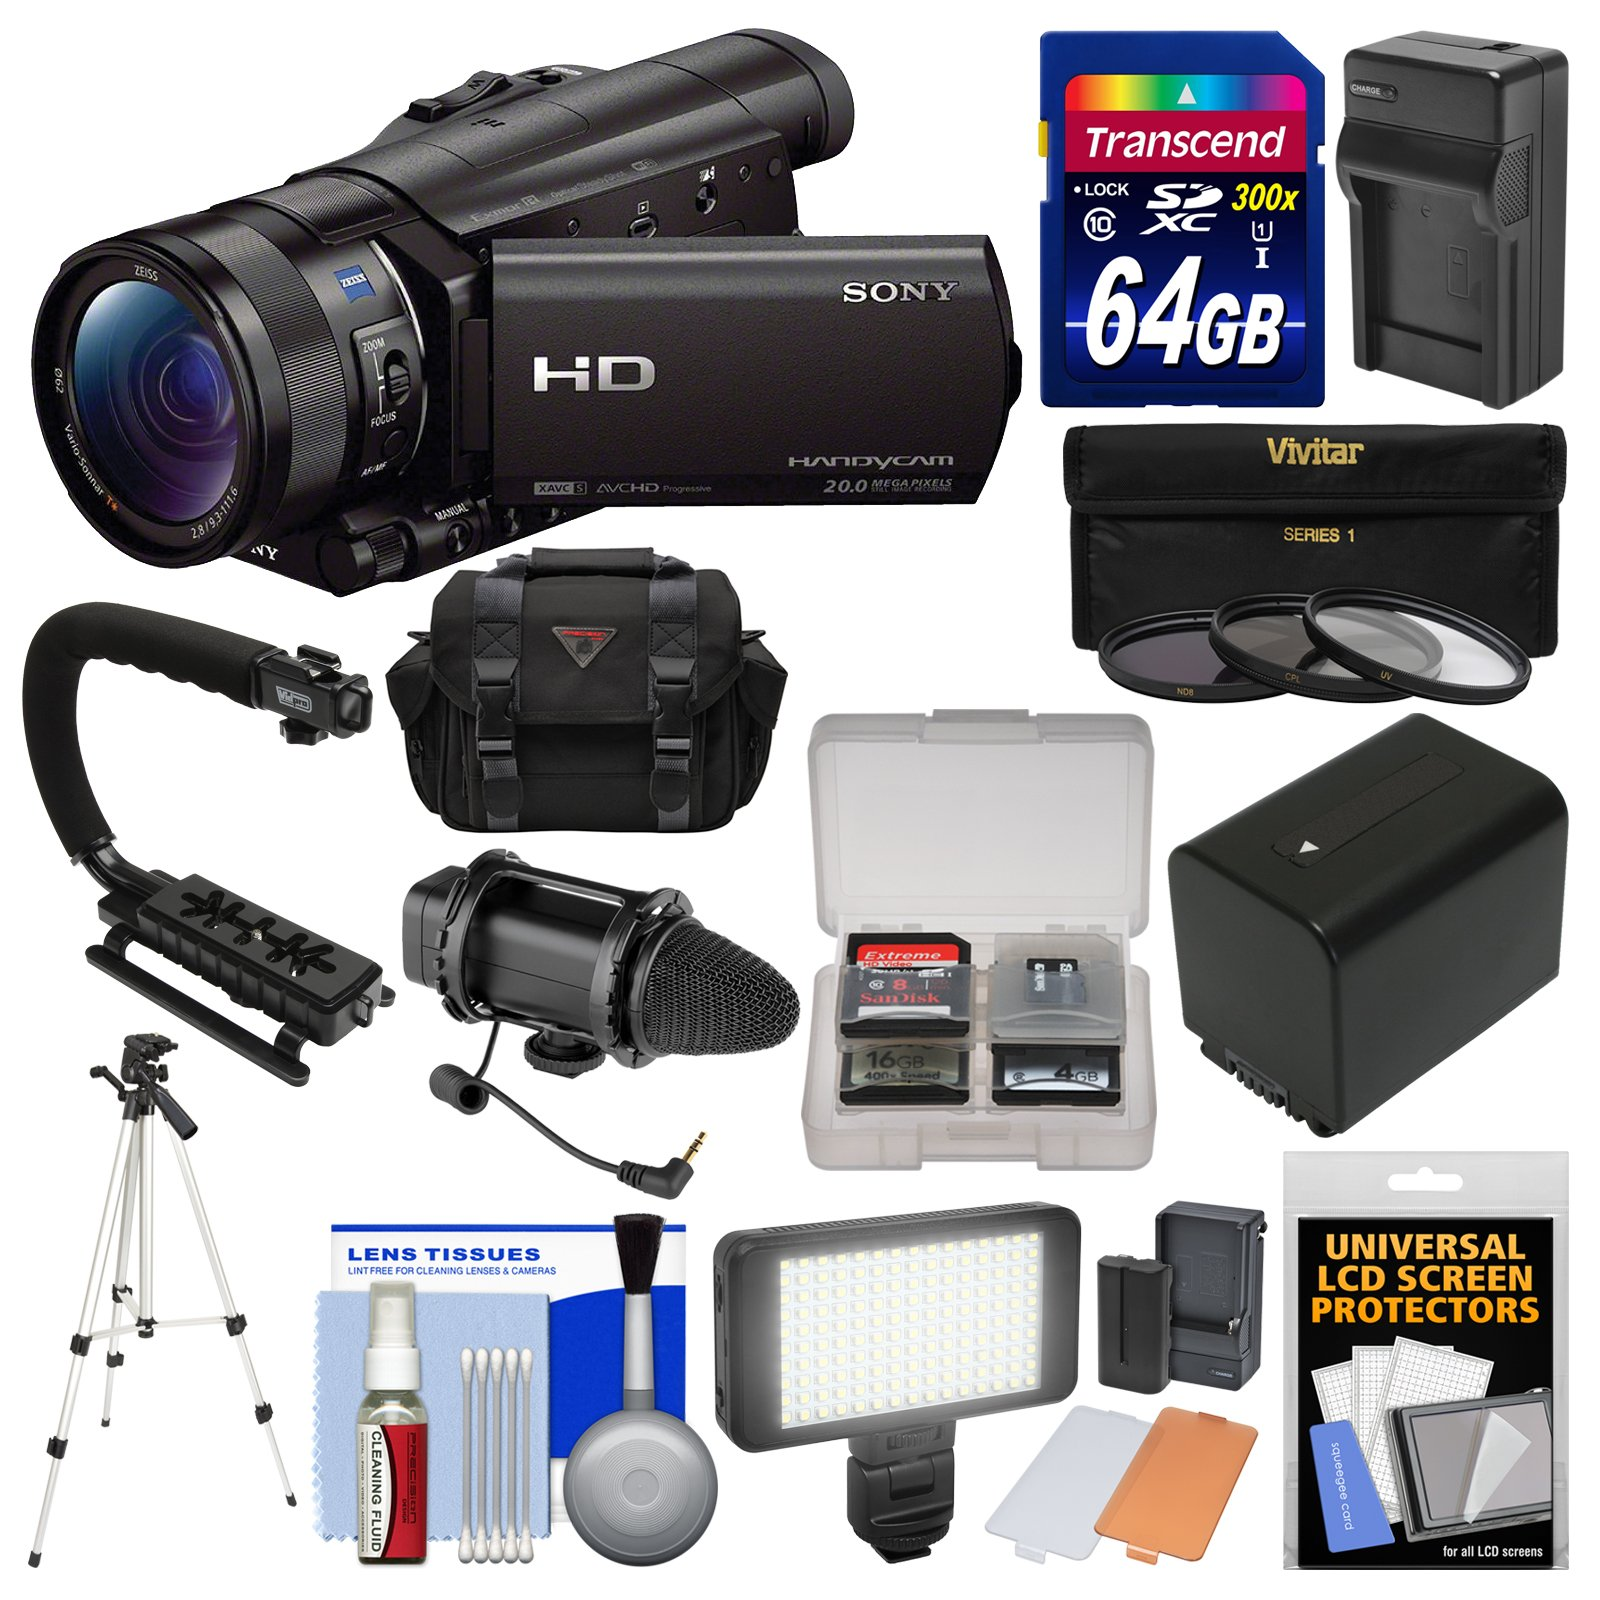 Sony Handycam HDR-CX900 Wi-Fi HD Video Camera Camcorder with 64GB Card + Case + LED Light + Microphone + Battery & Charger + Tripod + Filters Kit